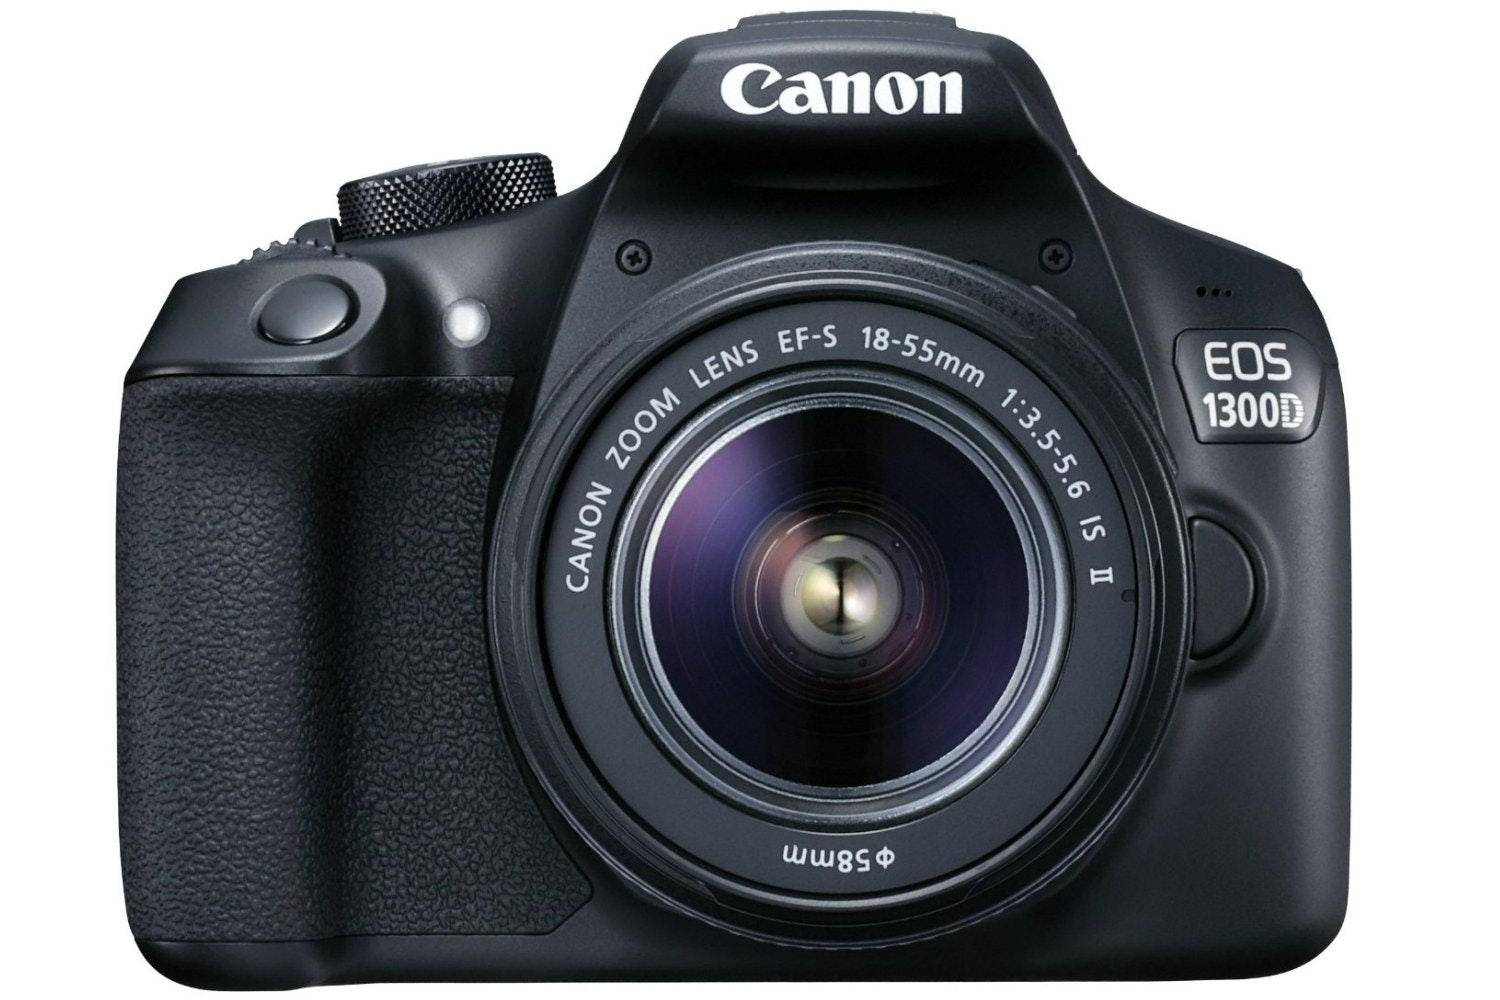 Canon EOS 1300D & 18-55mm IS Lens